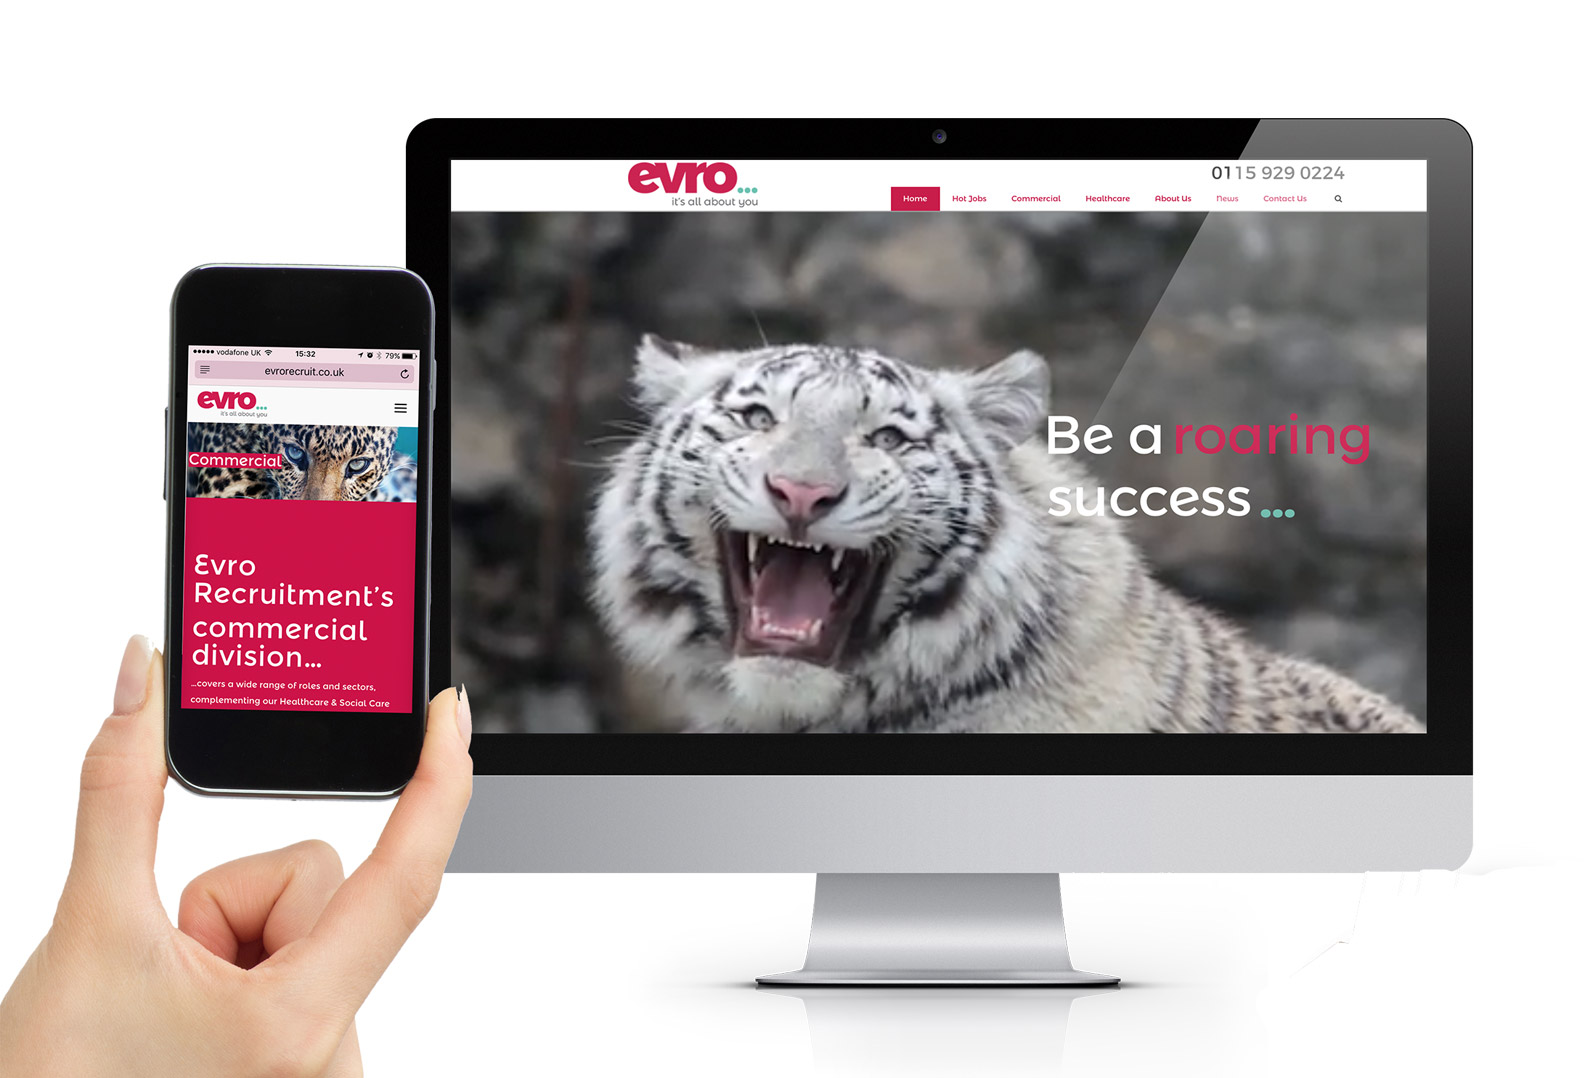 evro website